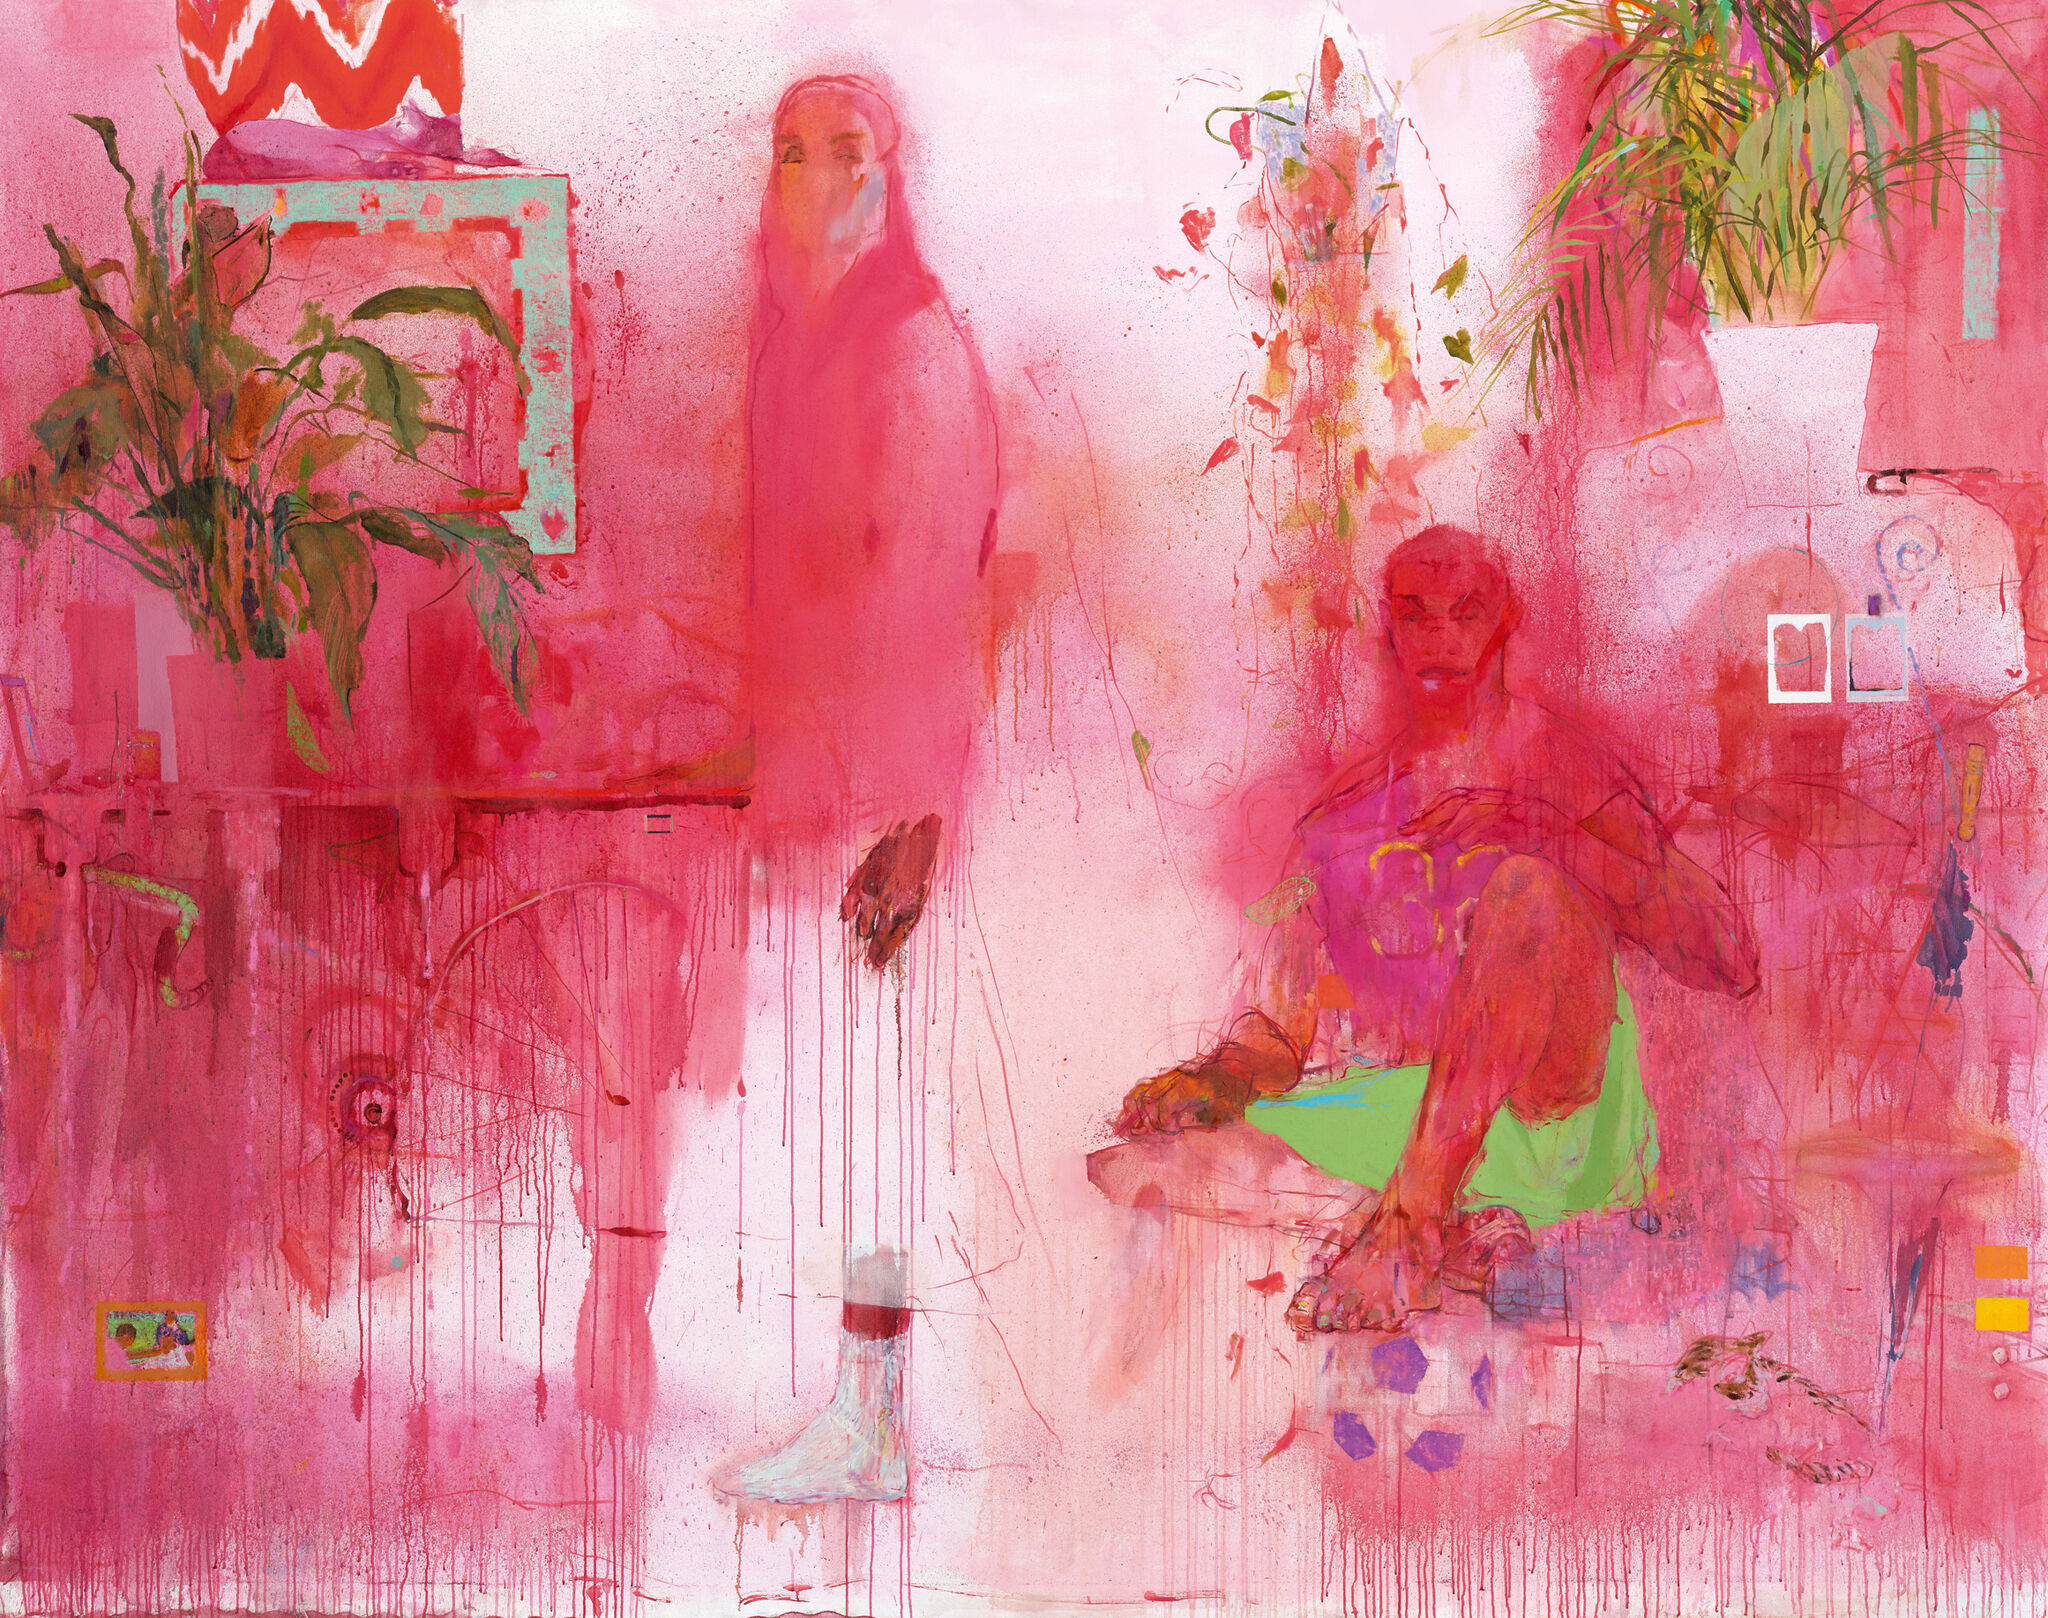 Two figures, one standing and one seated, in a pink room with plants, artwork, and furniture subtly emerging from the painterly background.